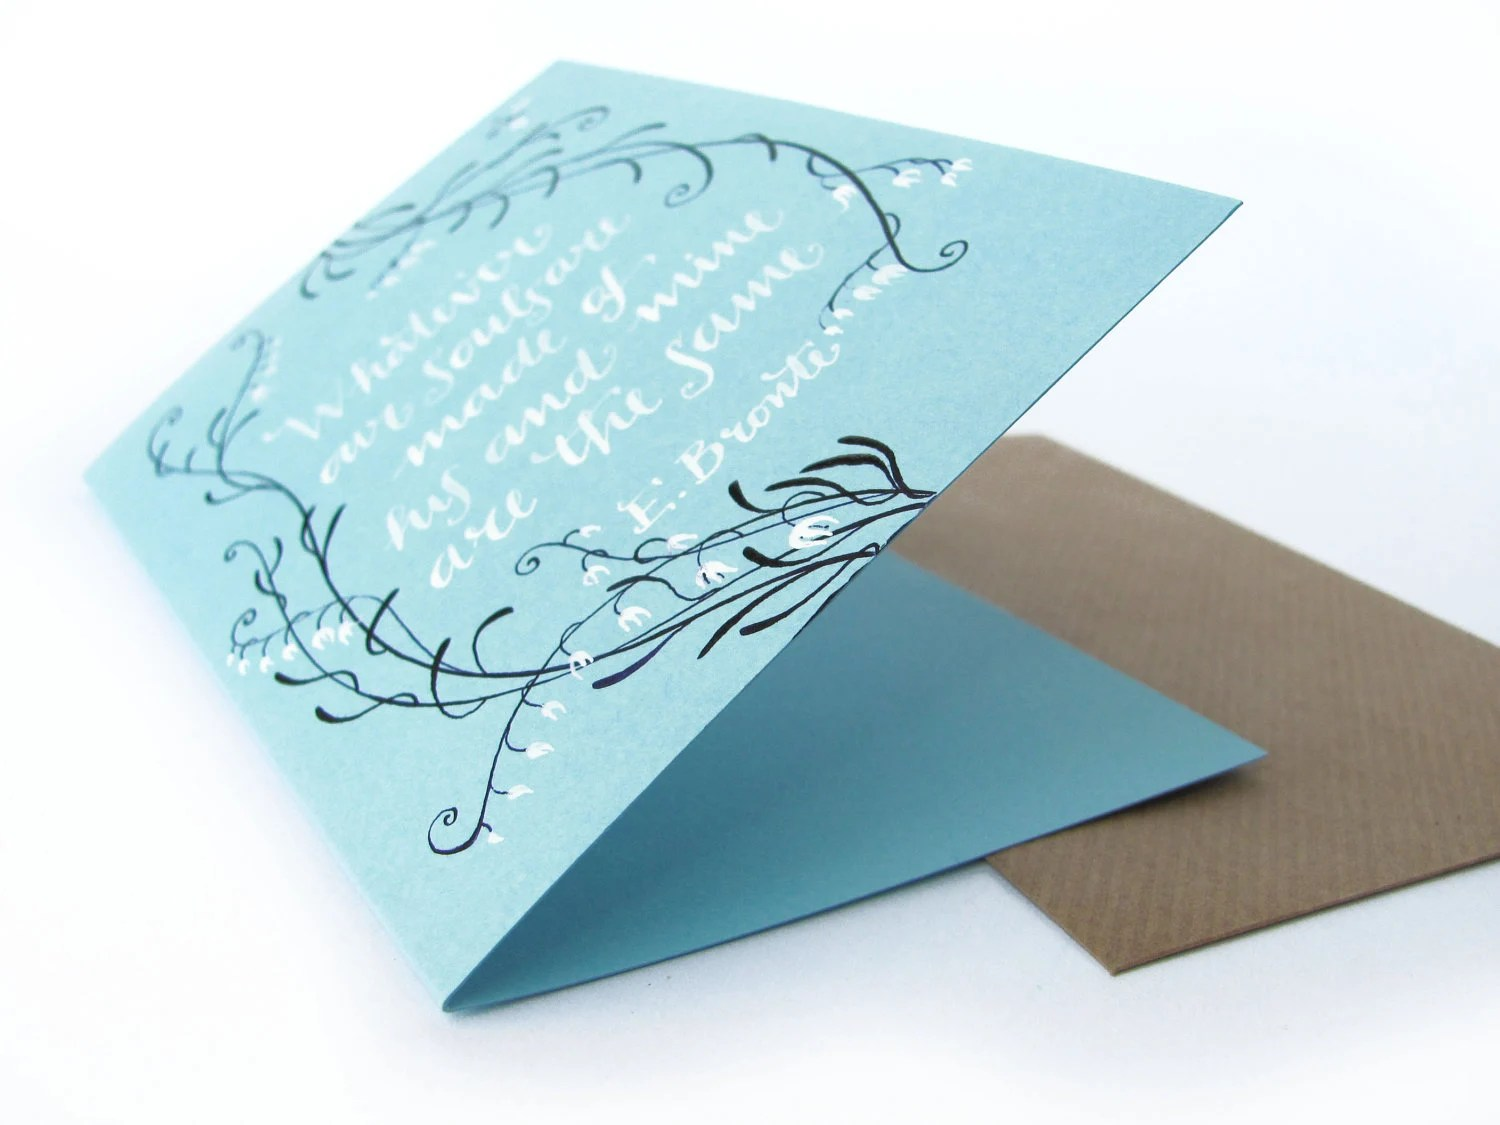 Wuthering Heights quotation hand painted light blue card - whatever our souls are made of - PemberleyPond